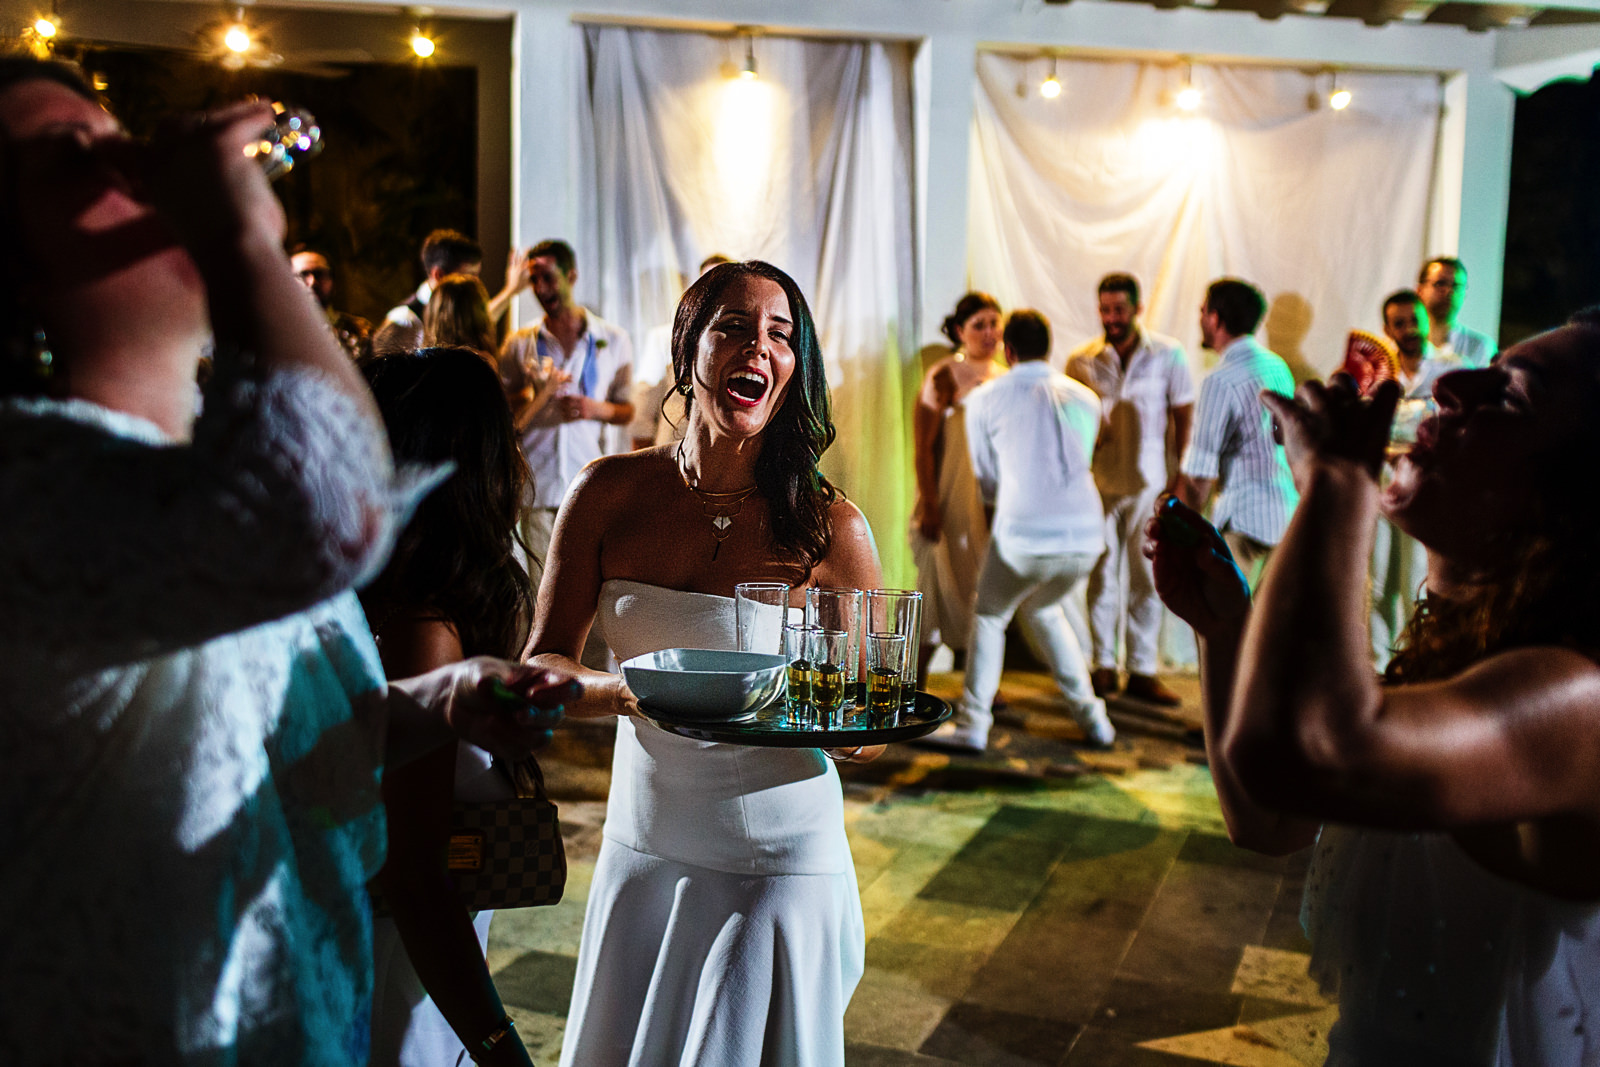 Wedding guest holds a tray of tequila shots while other two girls drink them